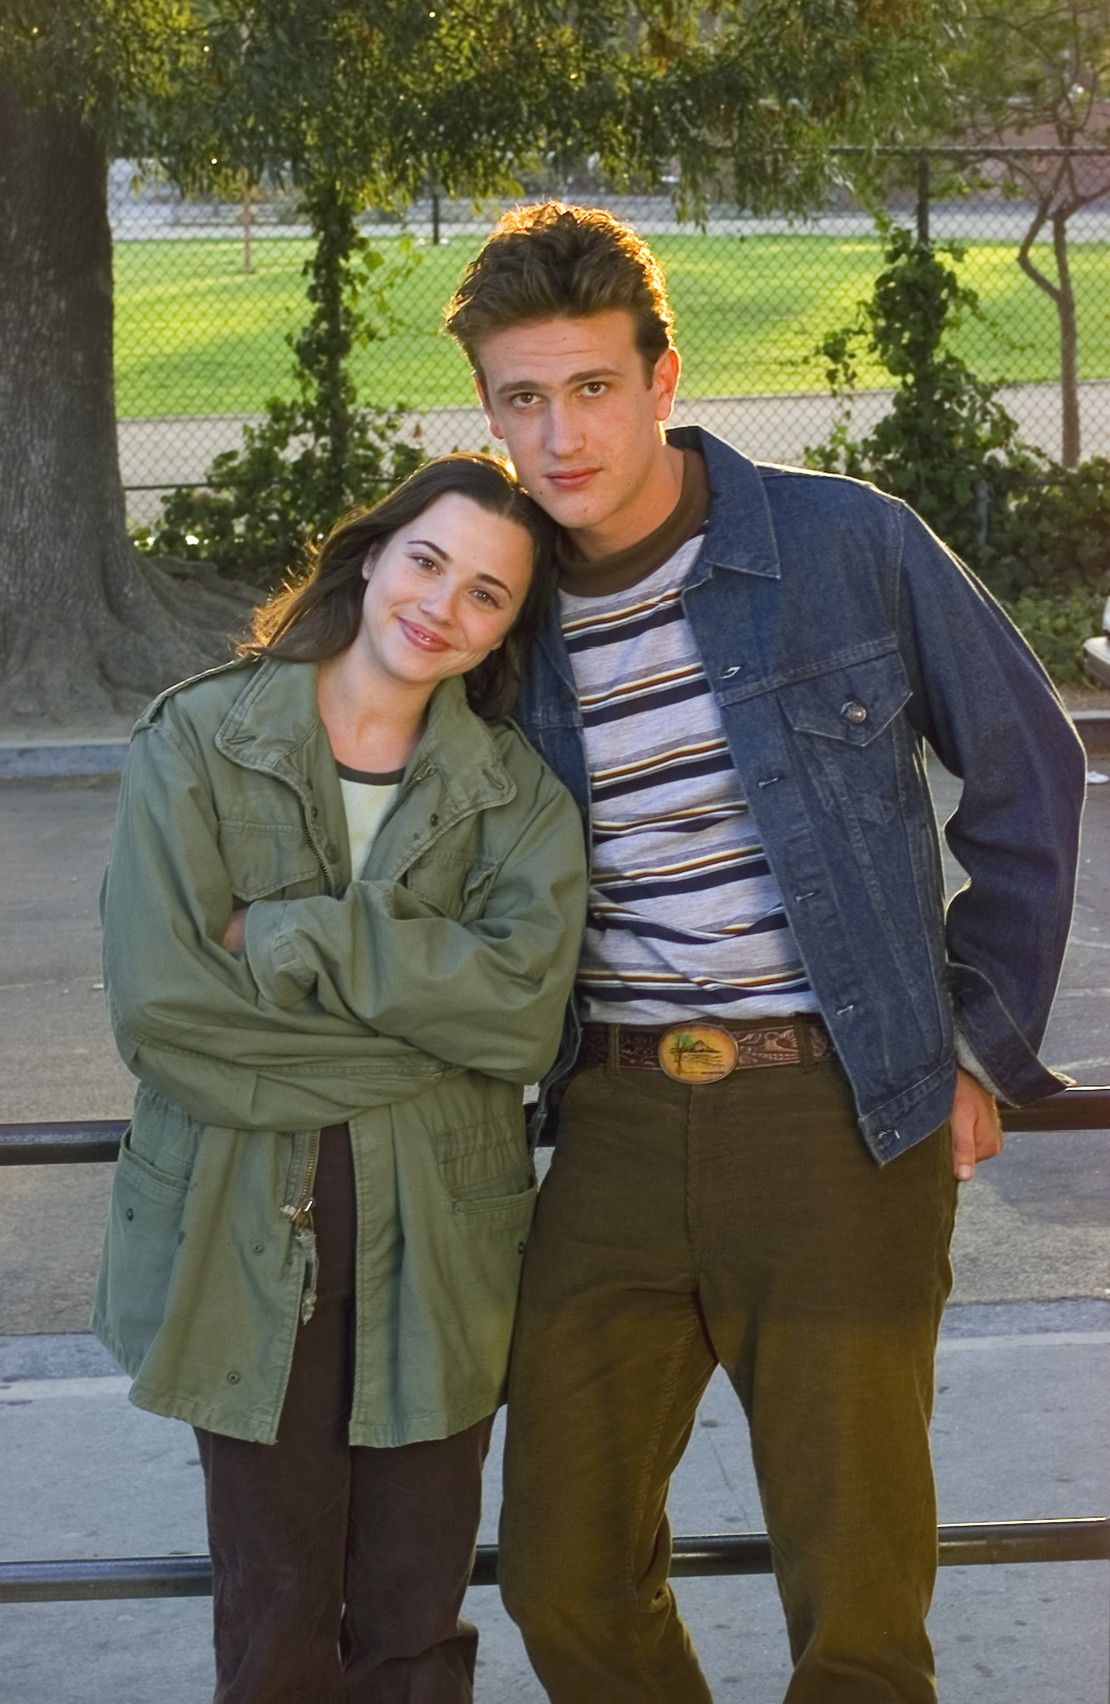 lindsay and nick from freaks and geeks i wanted them to